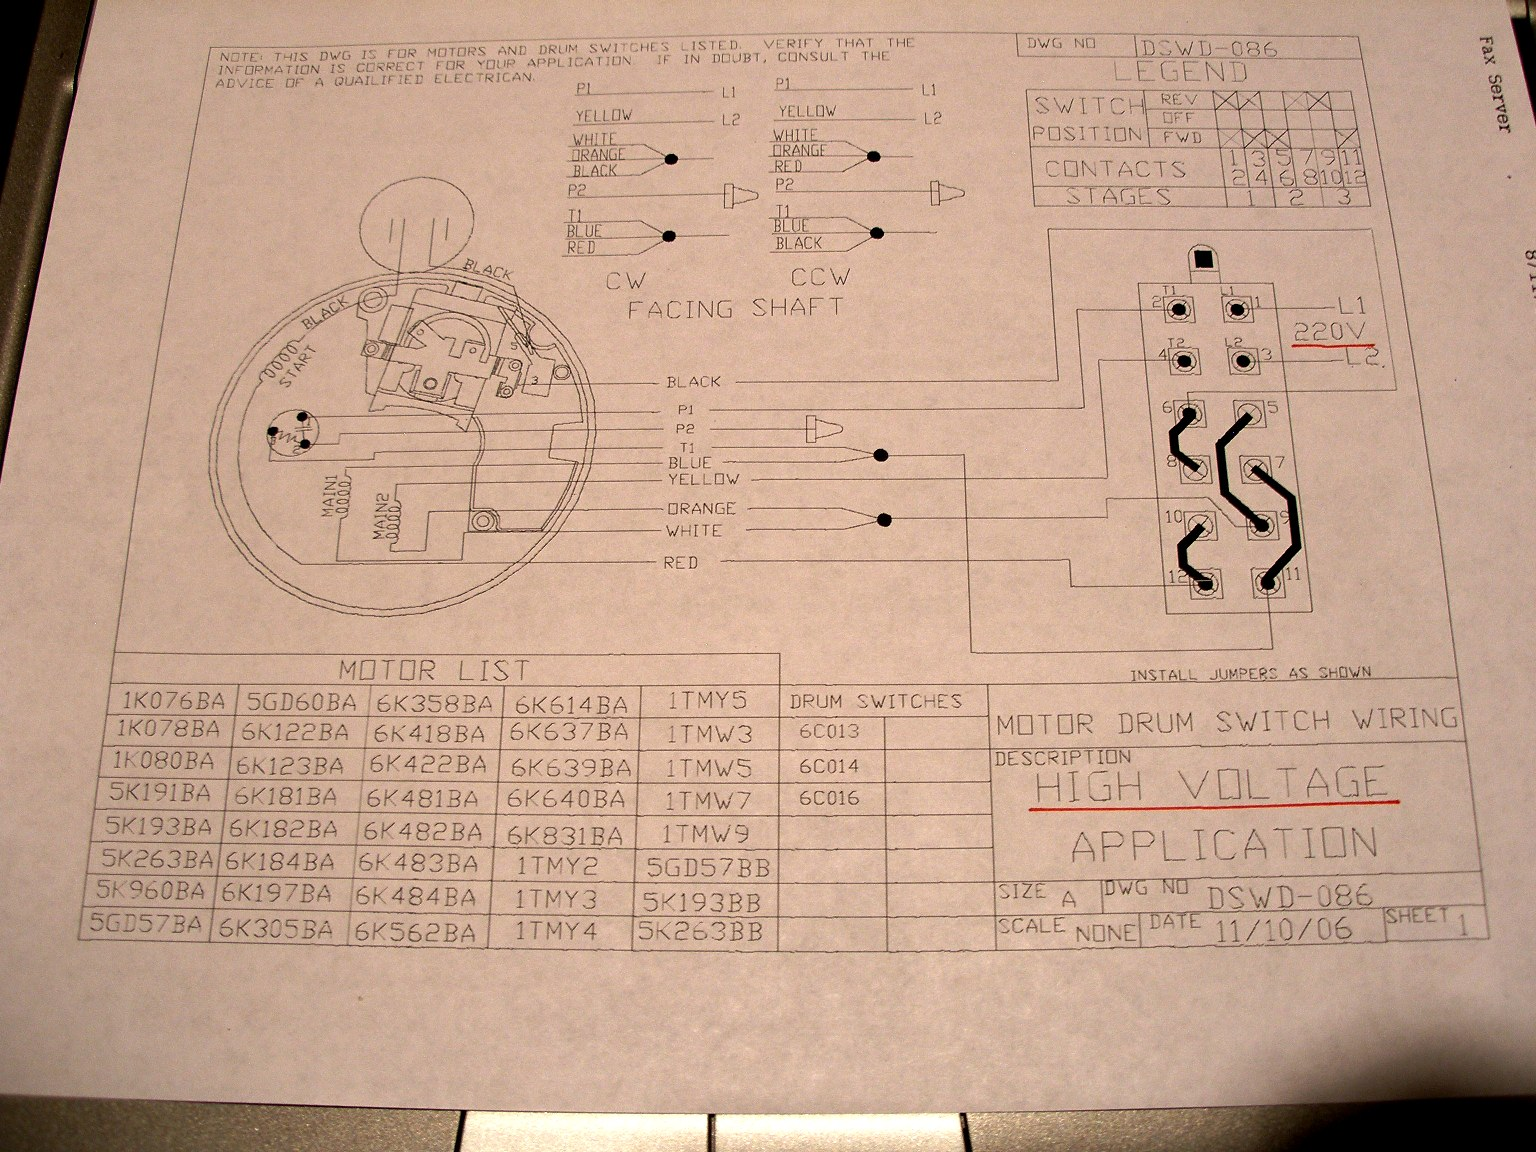 2011 08 11_193044_grainger_dayton_high_voltage_diagram the motor on my boat lift quit it was a ao motor, open ended and boat hoist usa wiring diagrams at soozxer.org